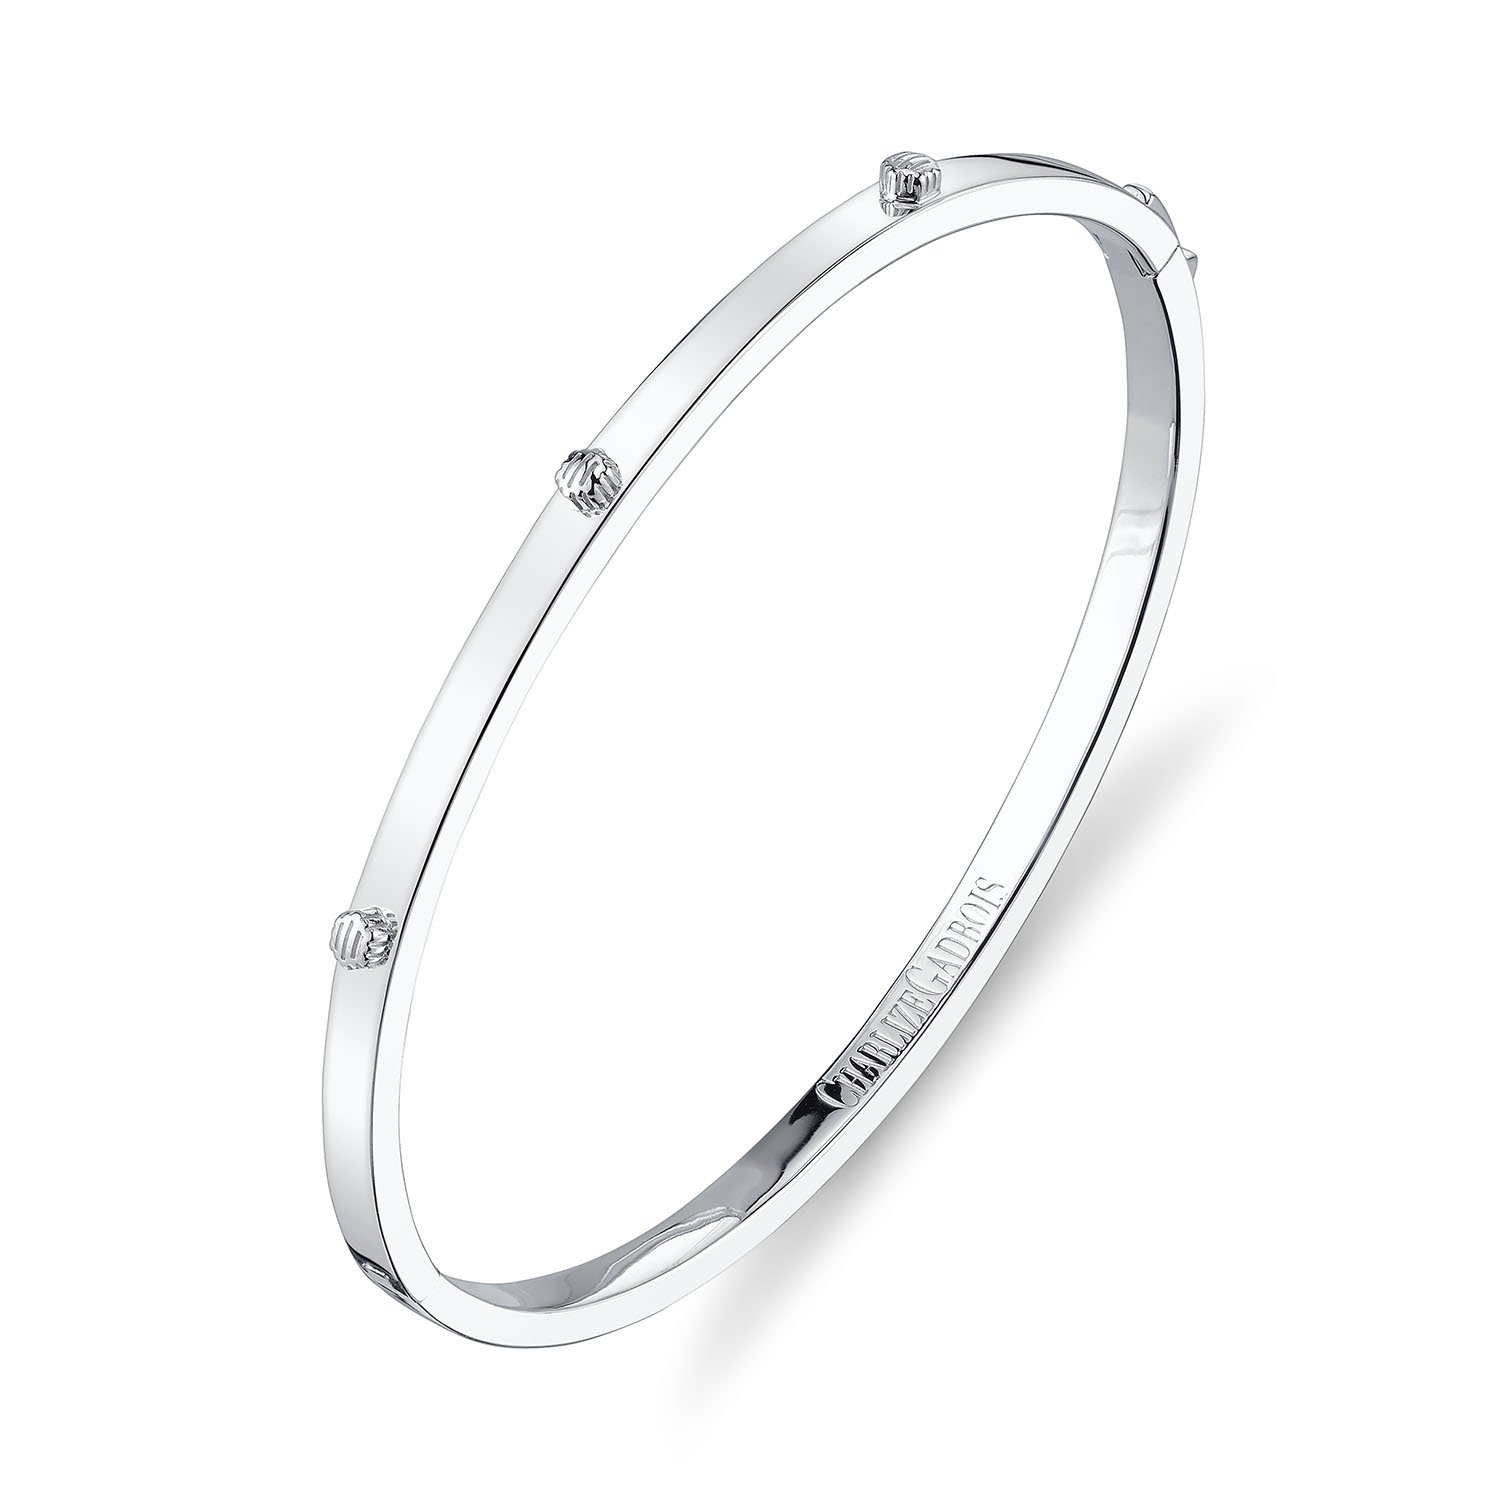 CHARLIZE GADBOIS 925 Sterling Silver Thin Hexagon Strie Bangle Bracelet, White Rhodium